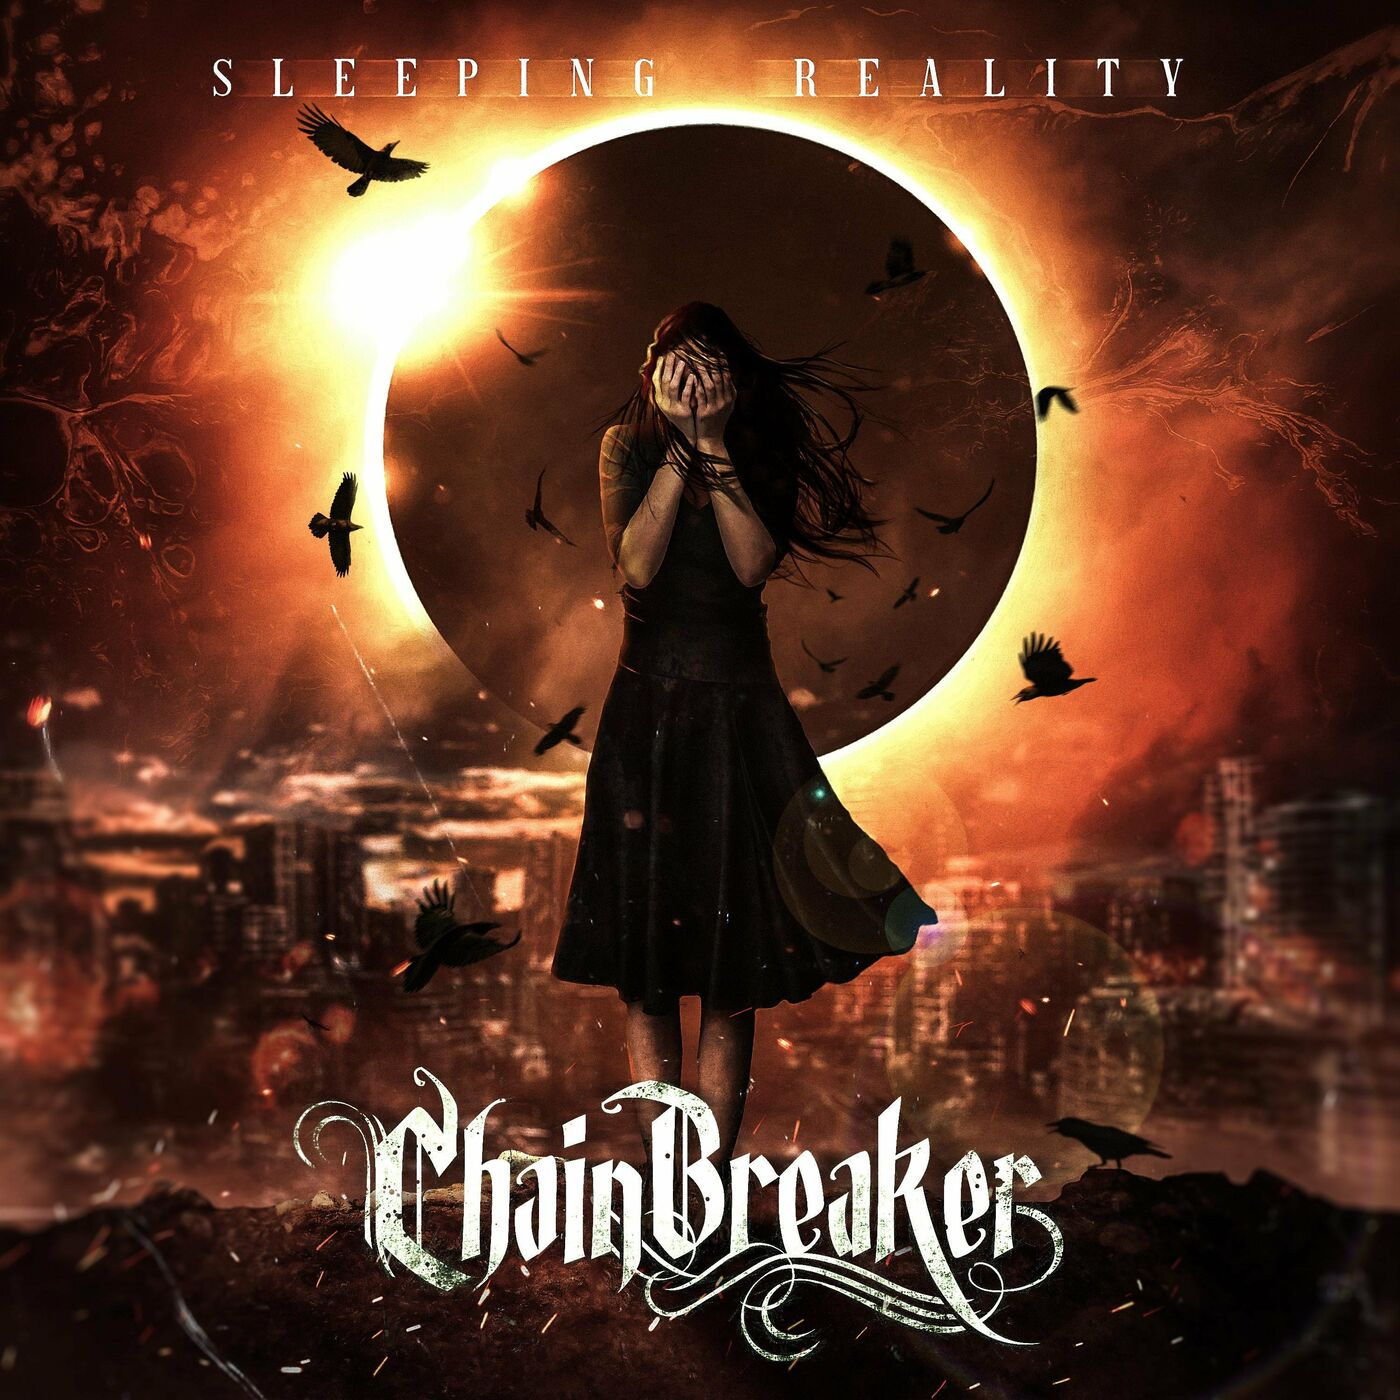 Chain Breaker - Sleeping Reality (2020)